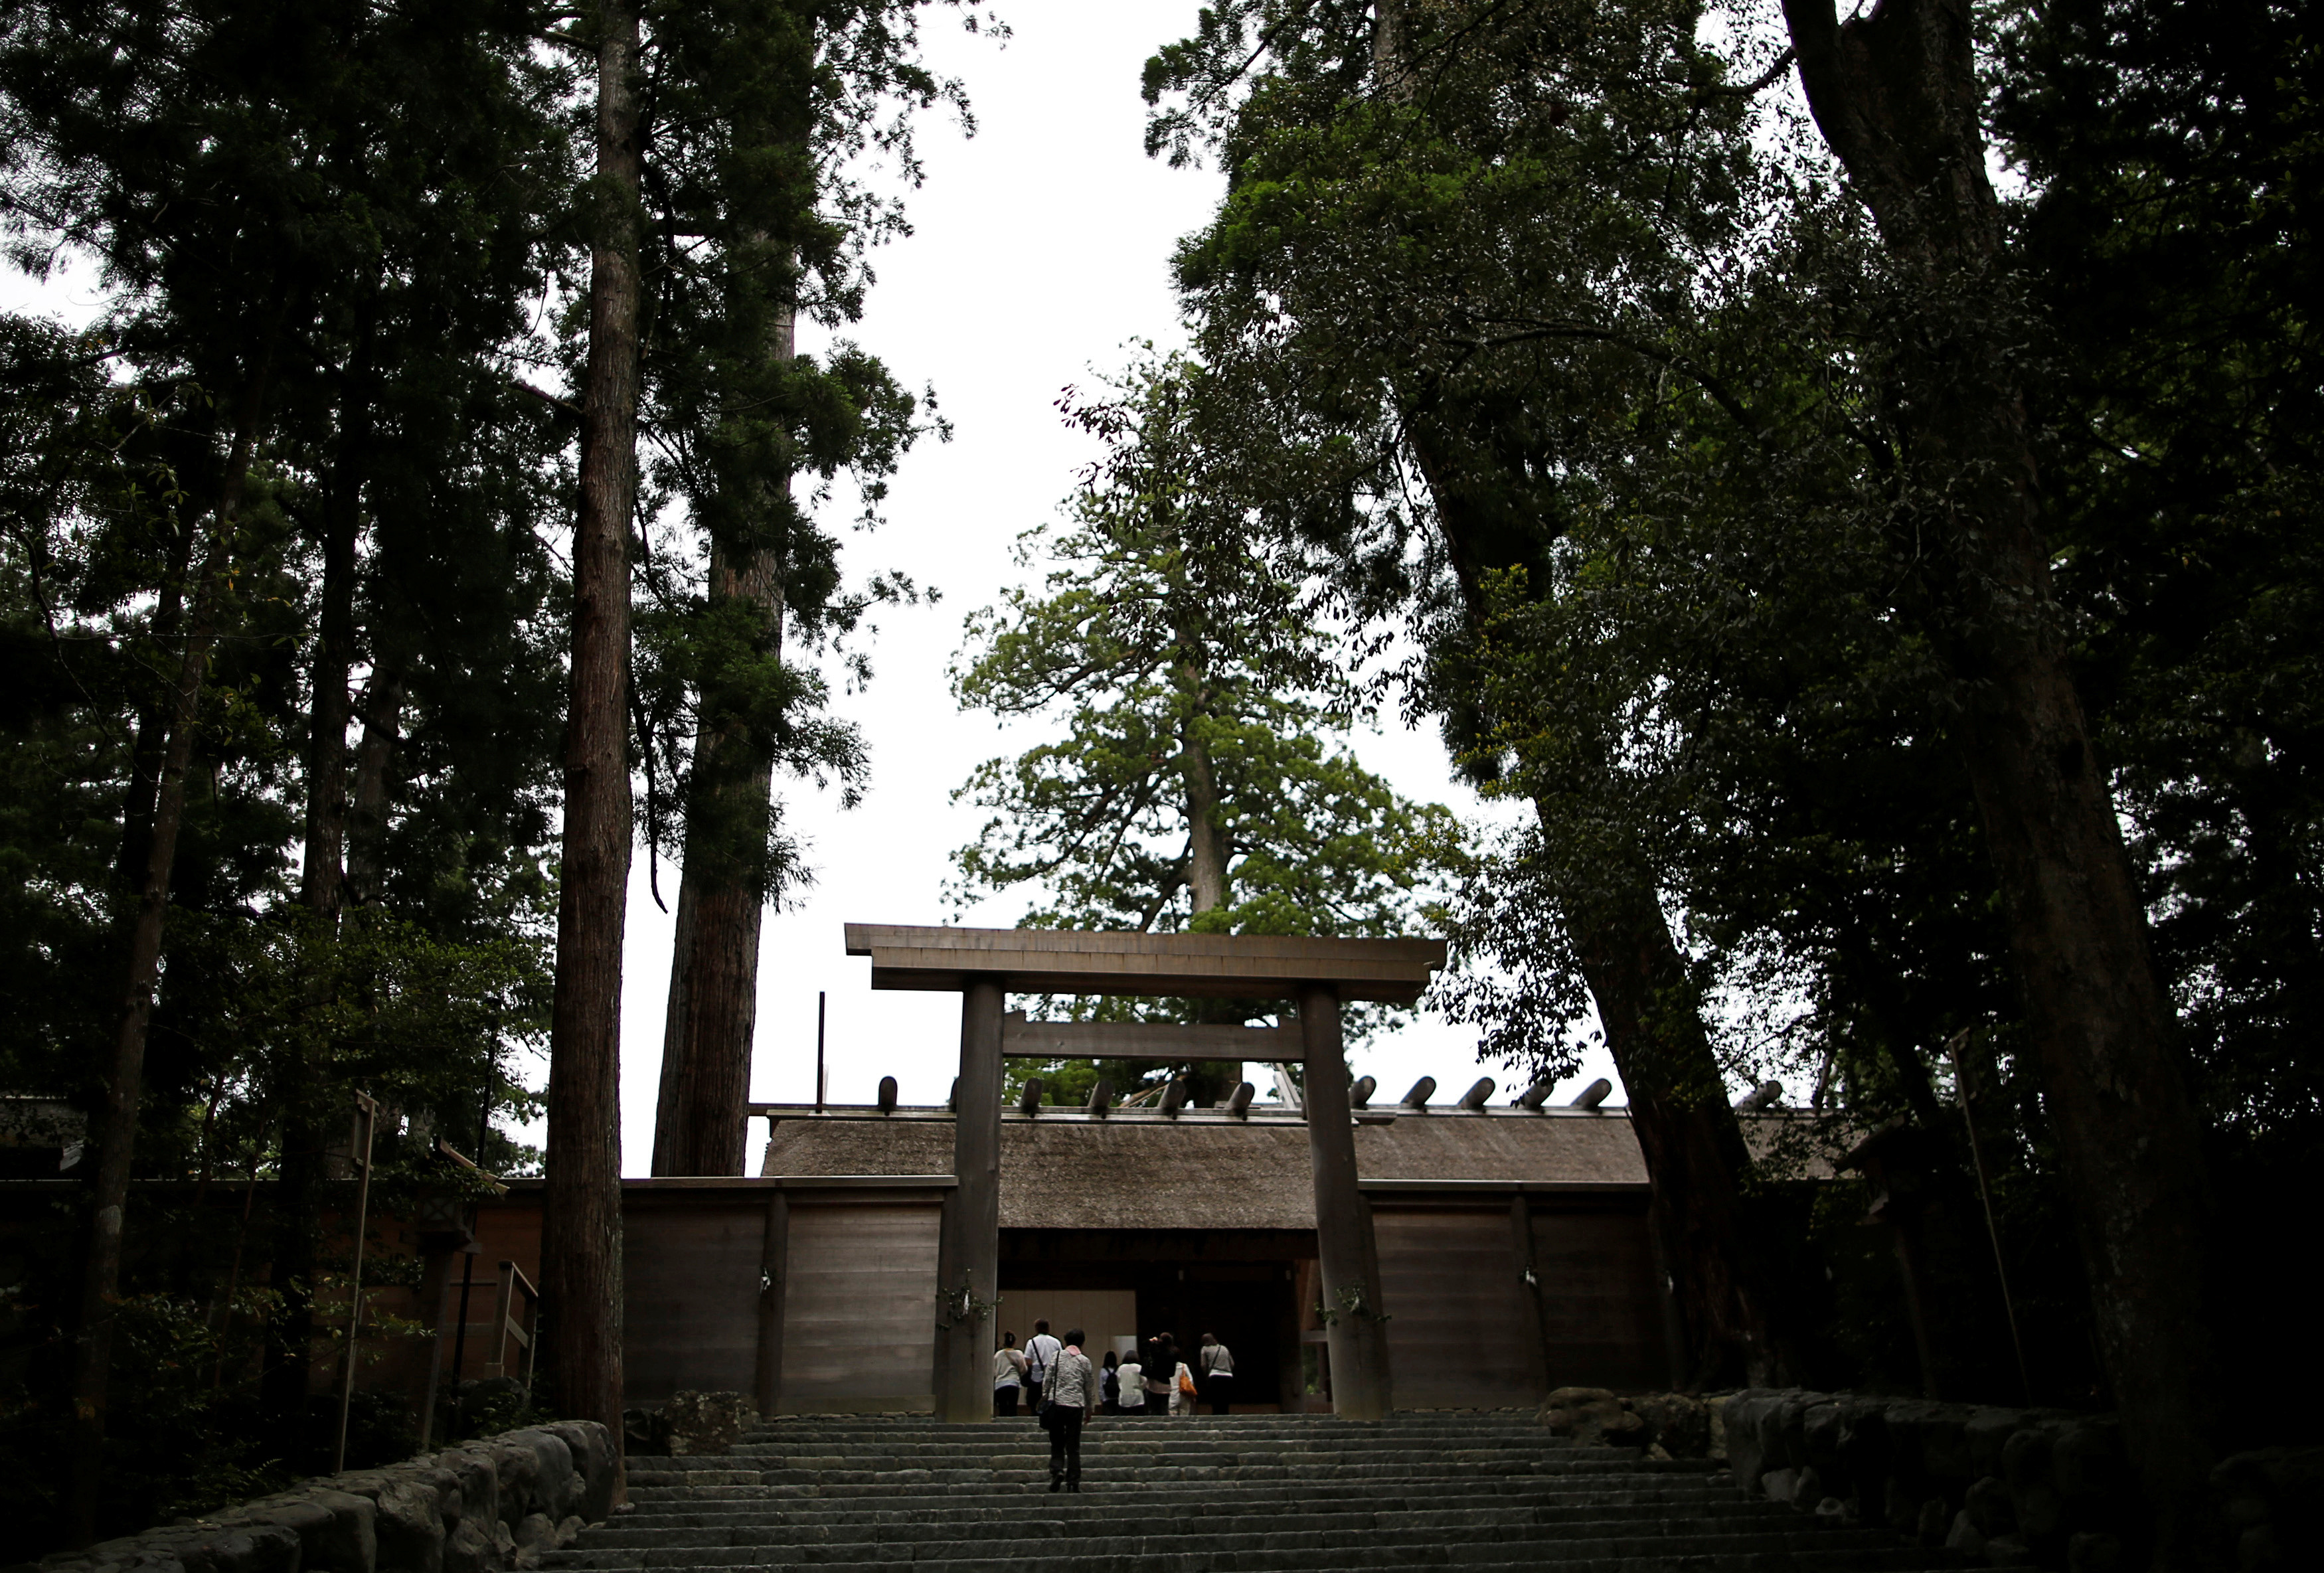 People walk through a wooden torii gate to pay their respects at Ise Grand Shrine also known as Ise Jingu shrine, Japan's oldest and most important Shinto shrine which enshrines Amaterasu Omikami, sun goddess and the ancestral goddess of the Imperial family, in Ise, Mie prefecture, Japan